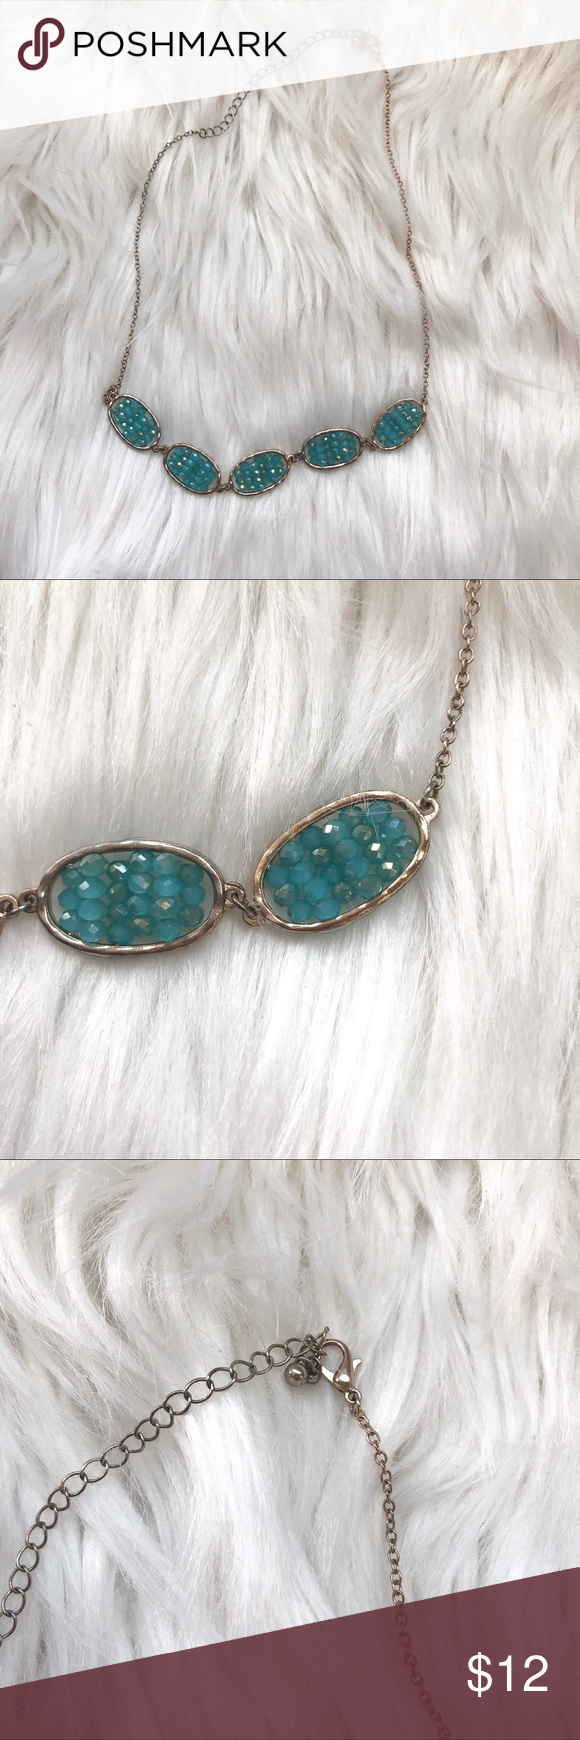 Stitch Fix Turquoise Beaded Gold Necklace Stitch Fix Turquoise Beaded Gold Necklace One size Pre-owned, excellent used condition Adjustable clasp Work at neckline length Stitch Fix Jewelry Necklaces #stitchfix